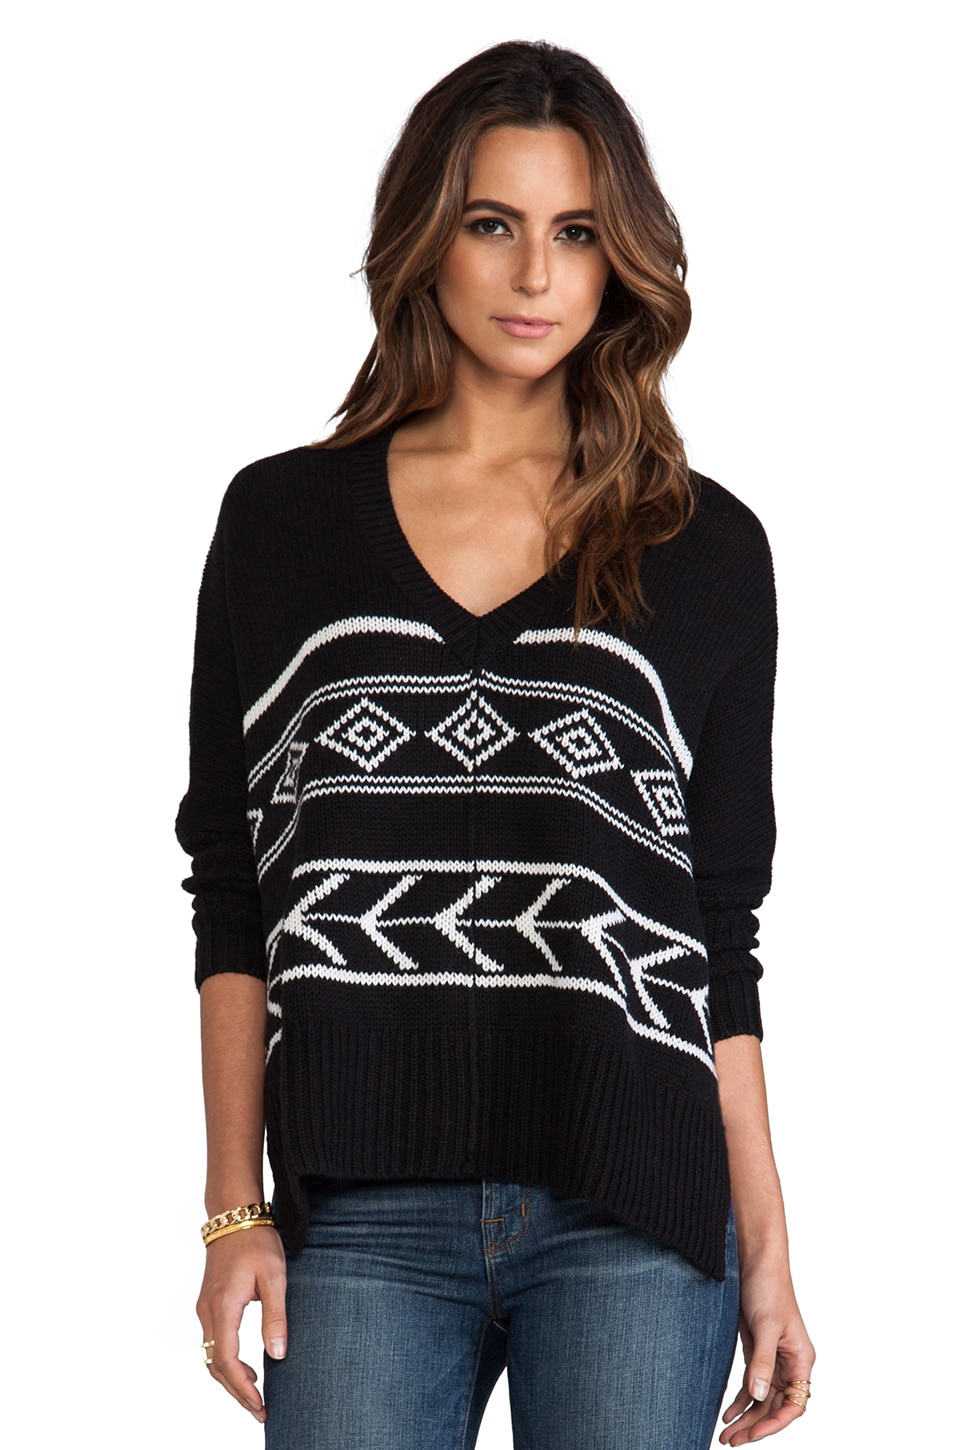 Feel the Piece Intarsia Poncho Sweater in Black/White